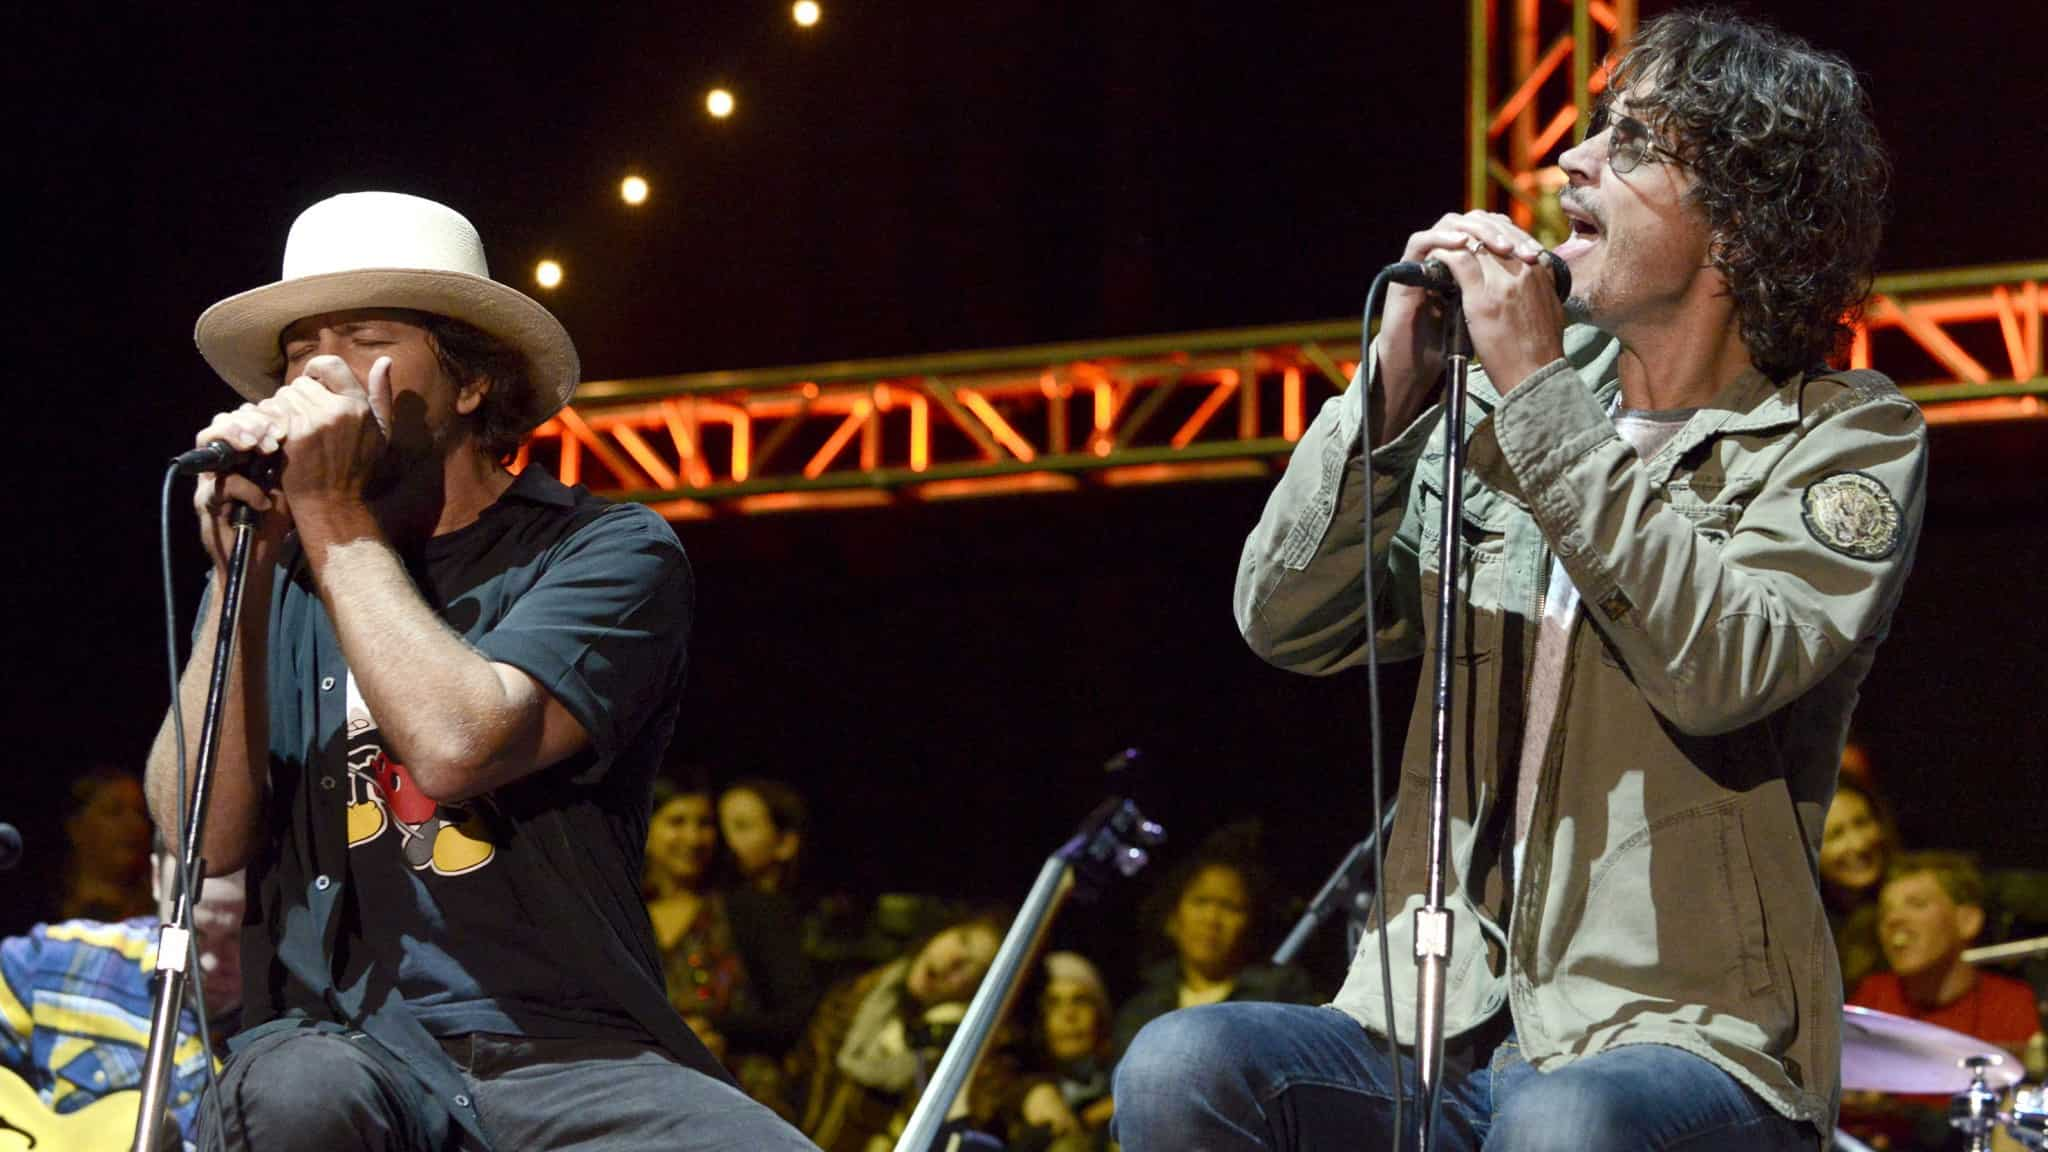 Eddie Vedder and Chris Cornell performing live